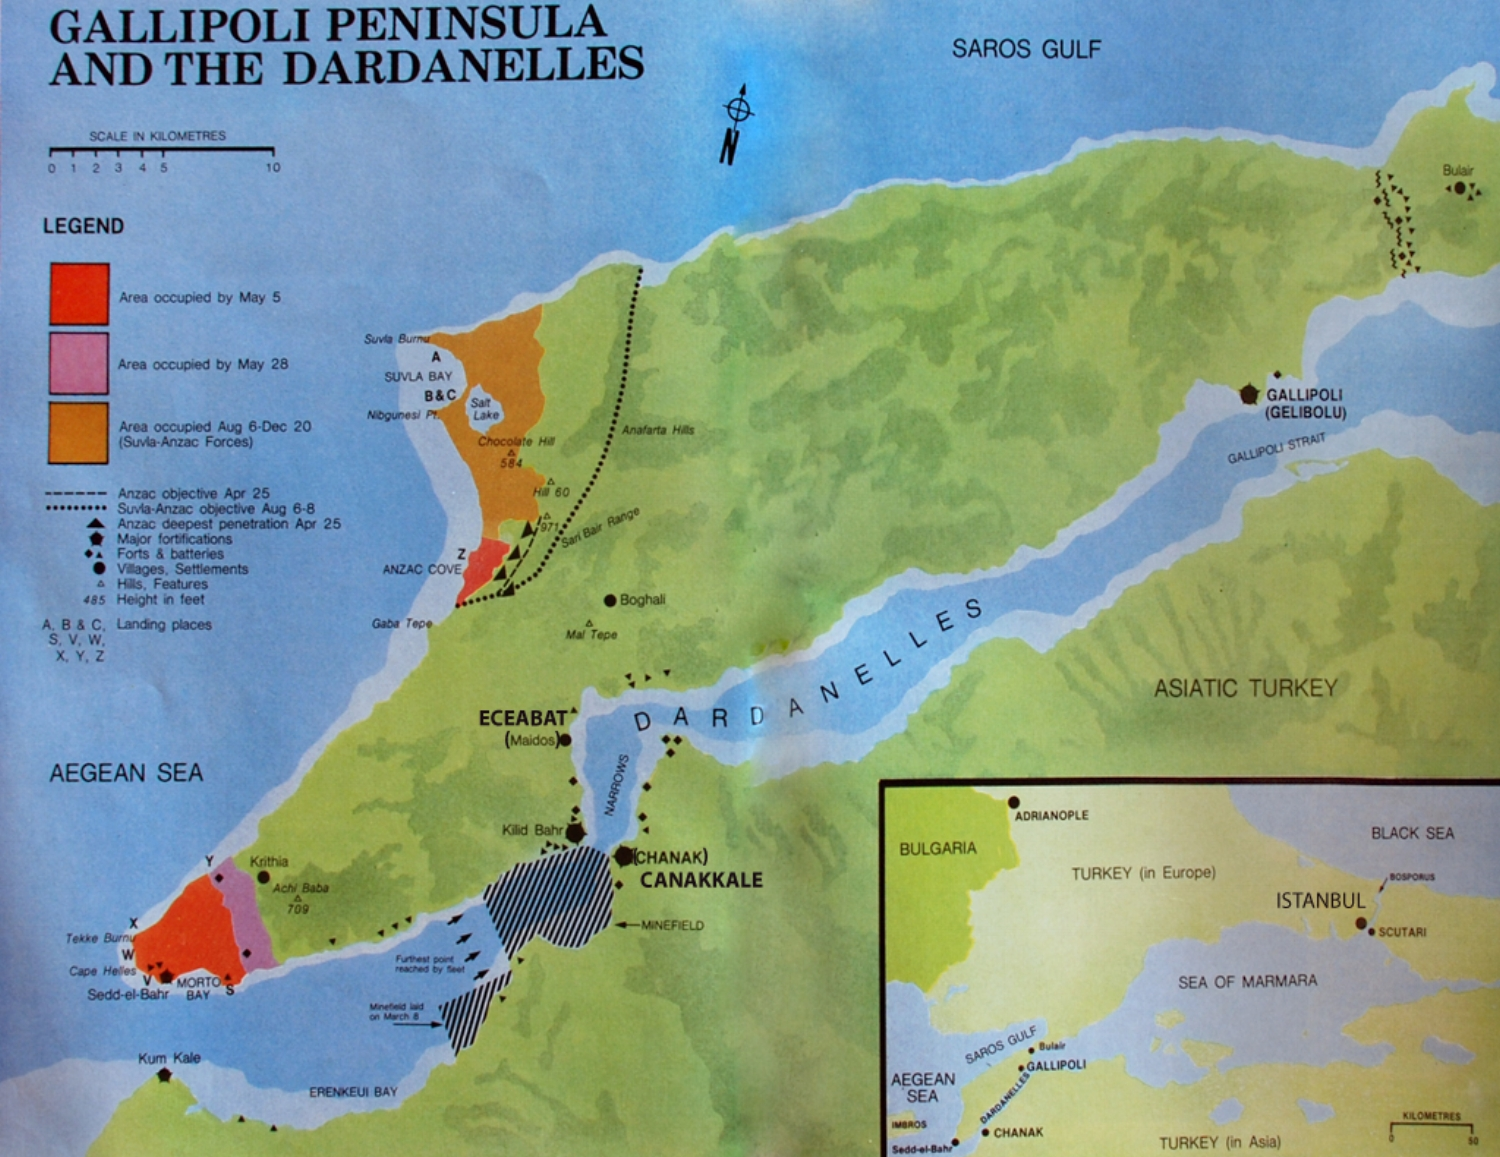 Key areas during the Gallipoli campaign 1915